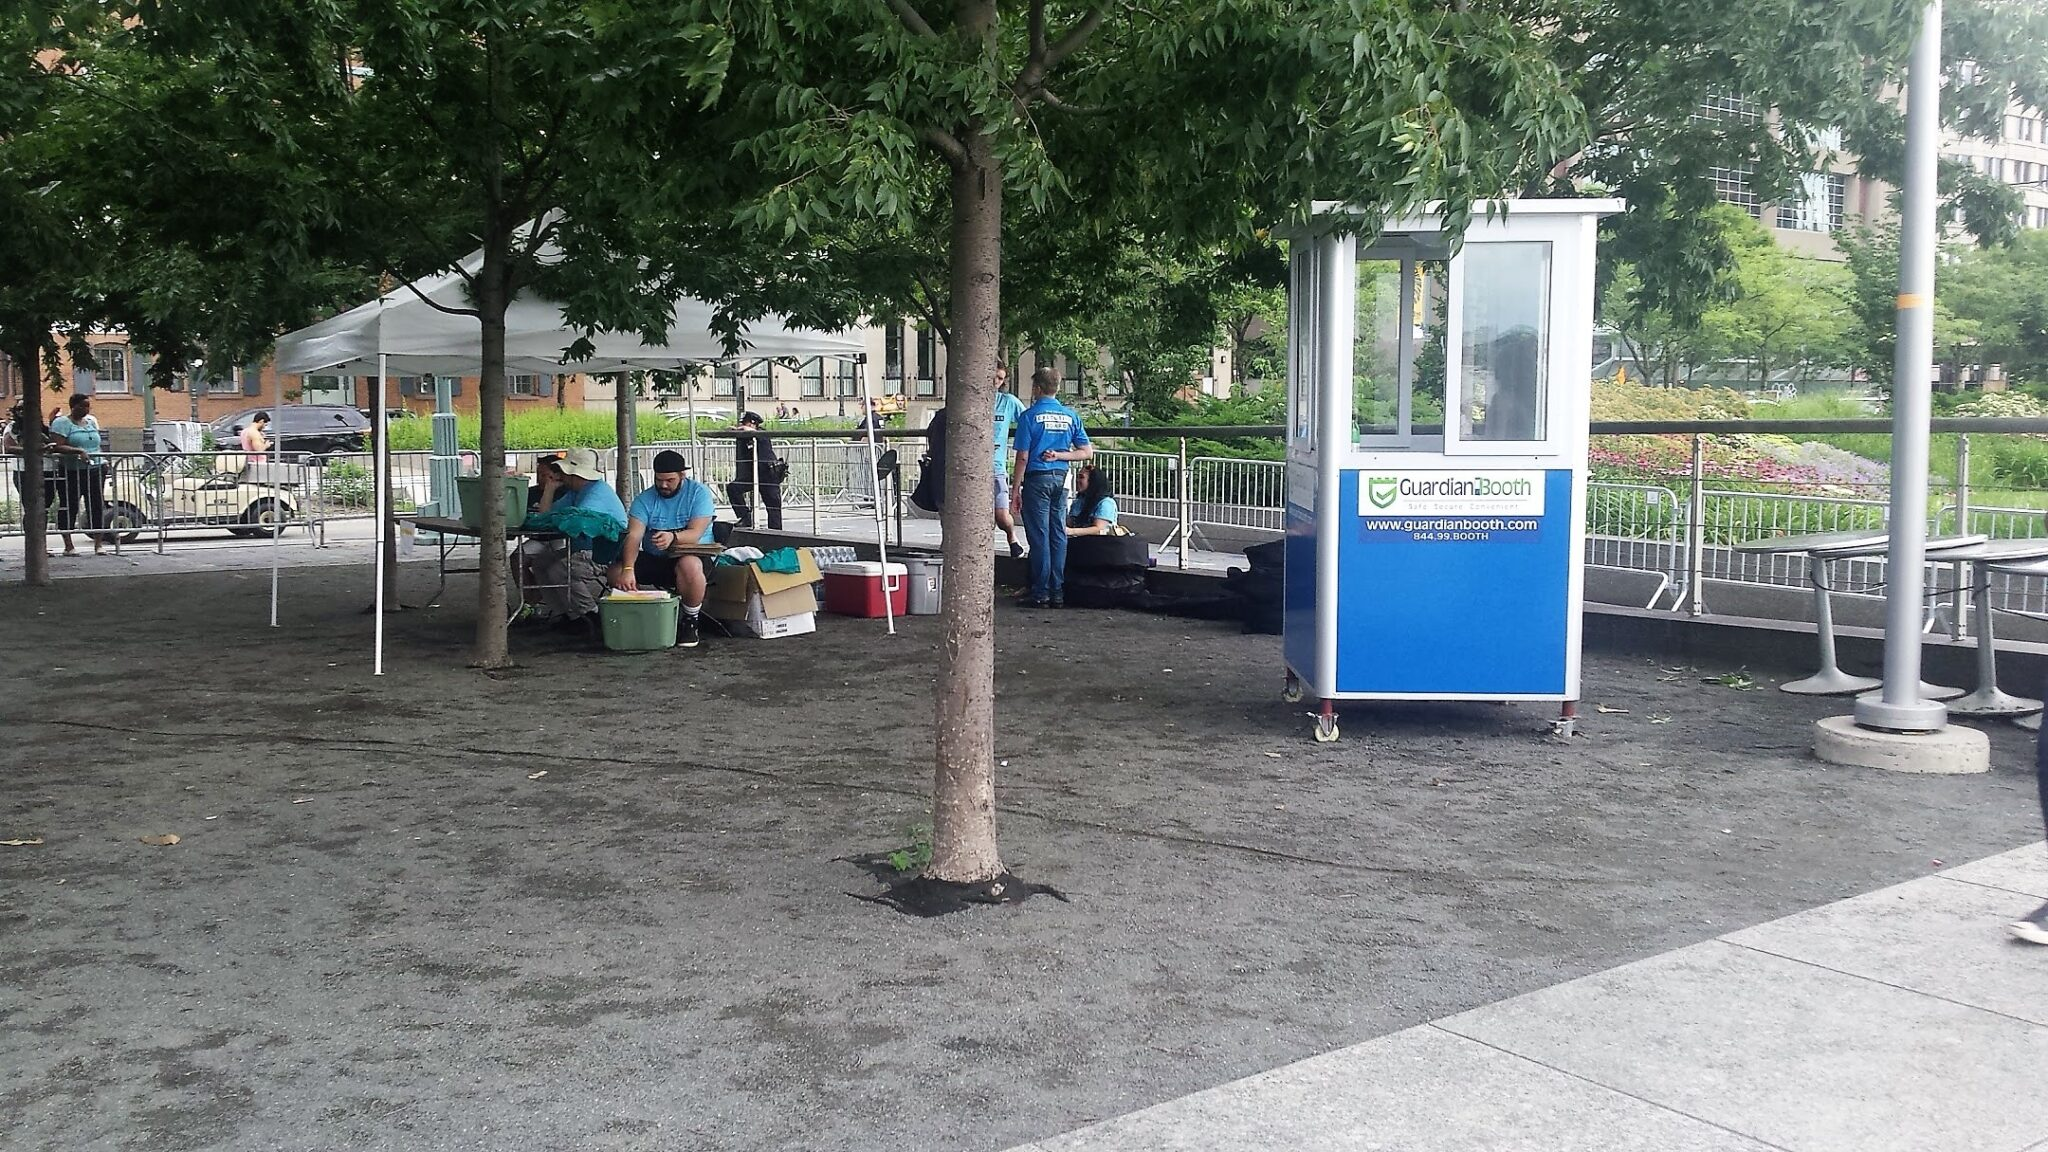 4x4 Cashier Booth in NYC outside Pride Parade, with Caster Wheels, Built-in AC, Swing Door and Flashing Light